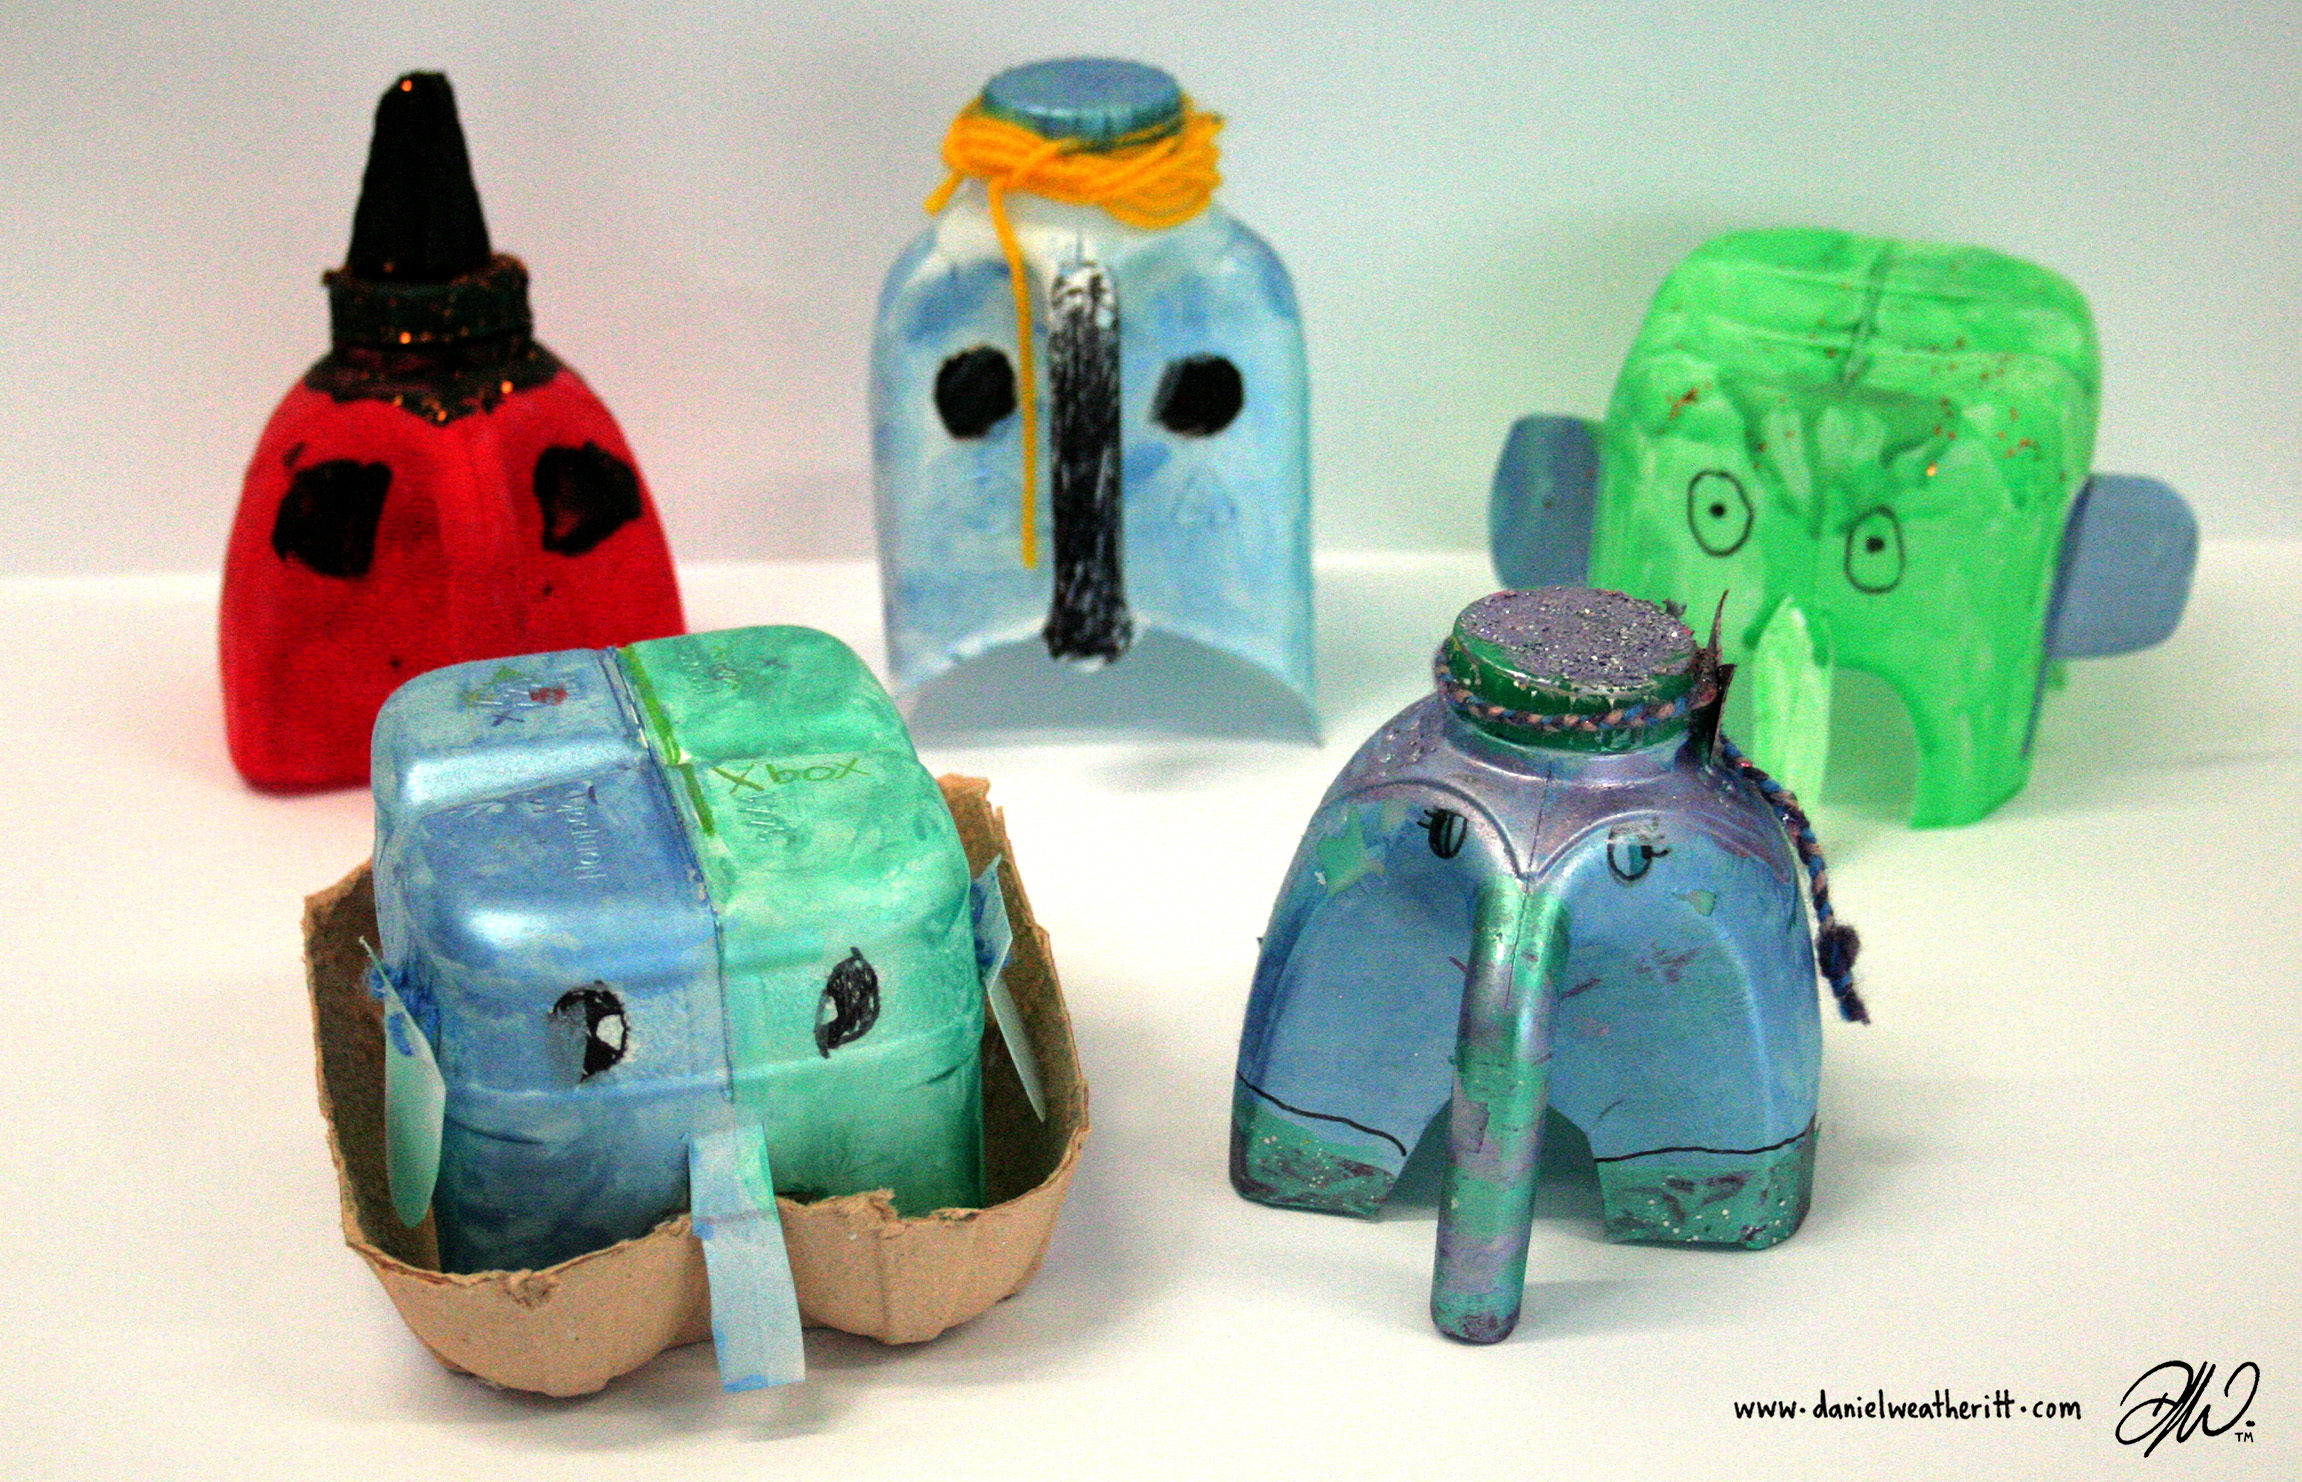 <b>Recycled Junk Elephant Sculptures</b> - by Cragside Primary School Pupils - 4 of 4